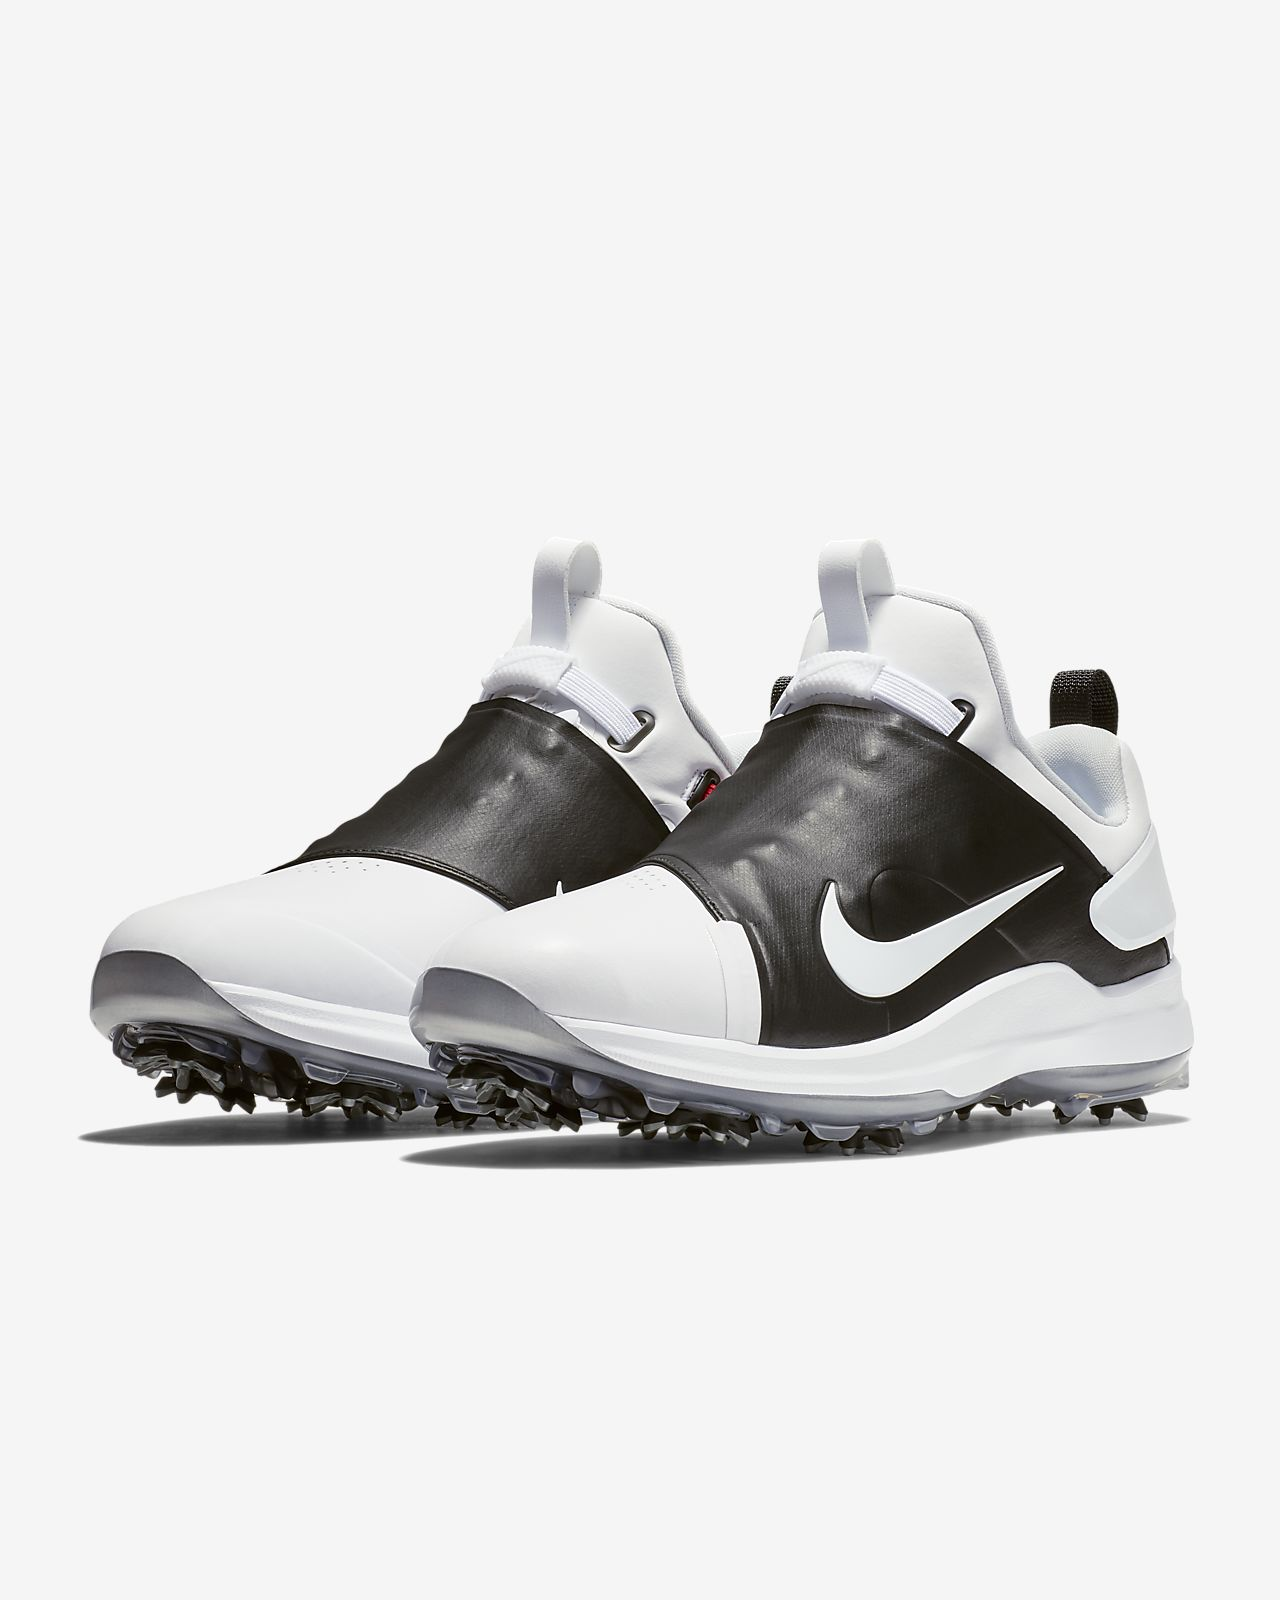 nike golf tour premiere mens golf shoe nikecom gb